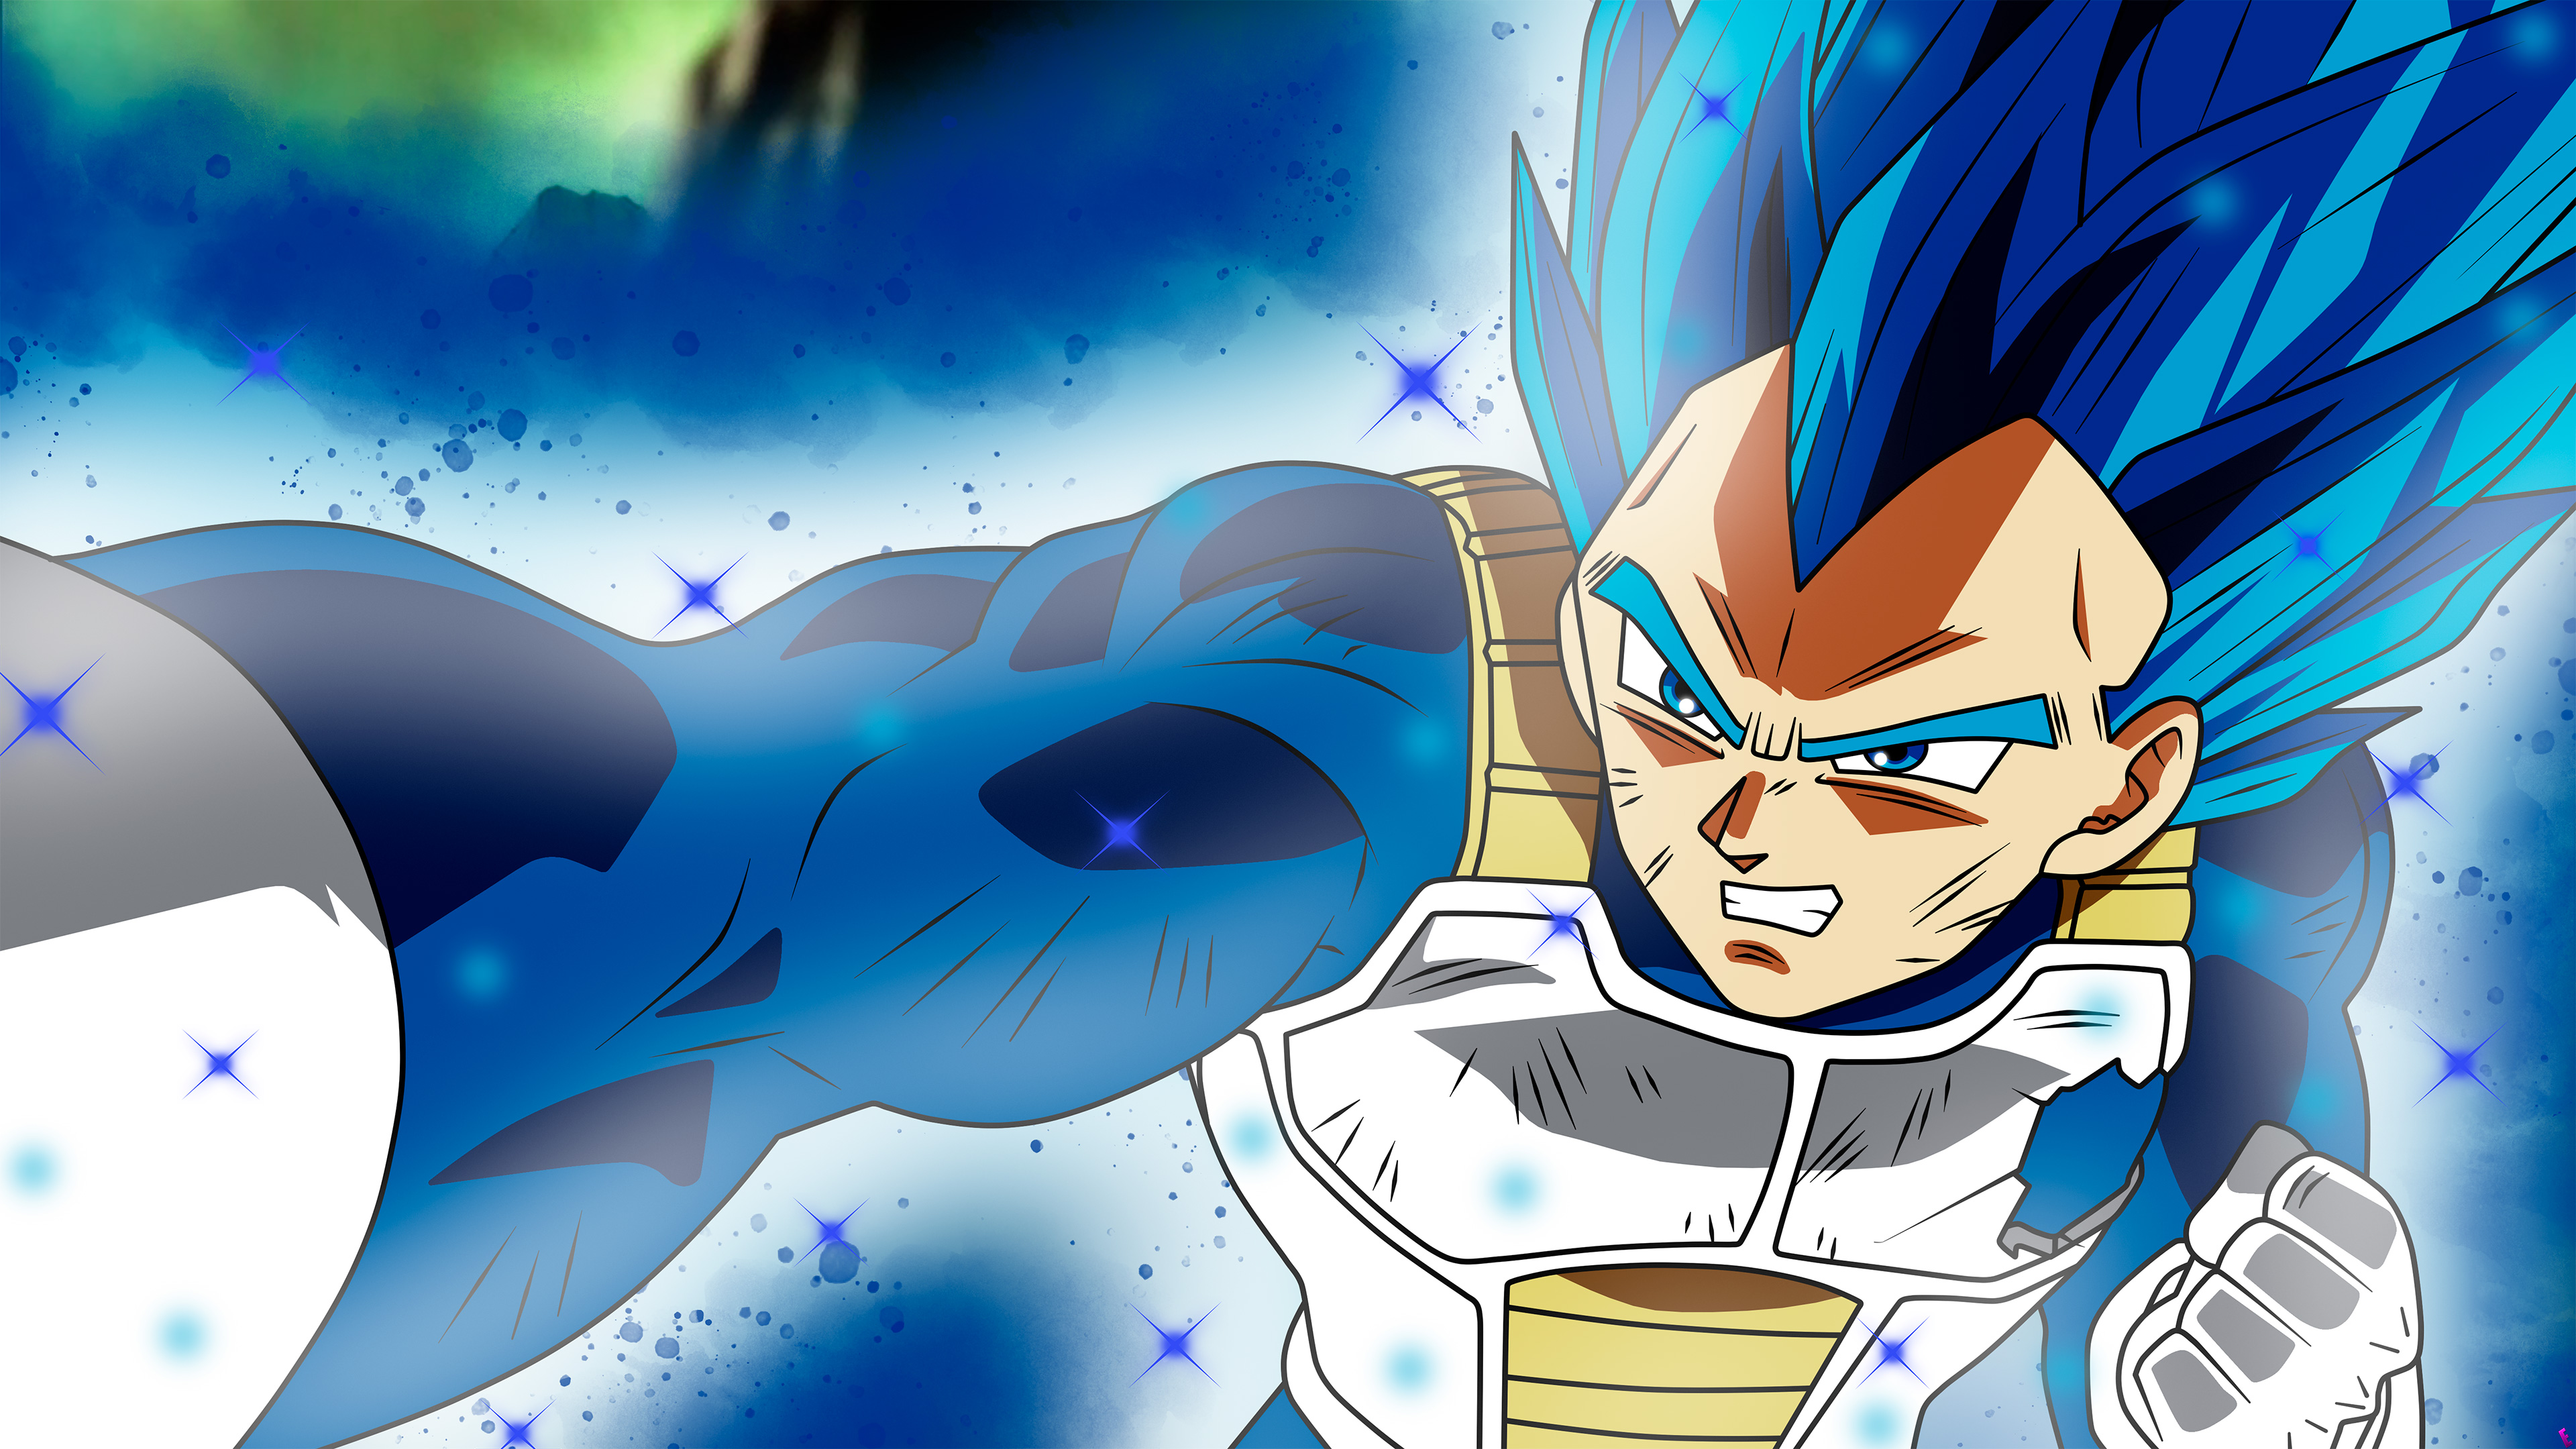 Vegeta Dragon Ball Super Anime Wallpaper 4k Ultra Hd Id3437